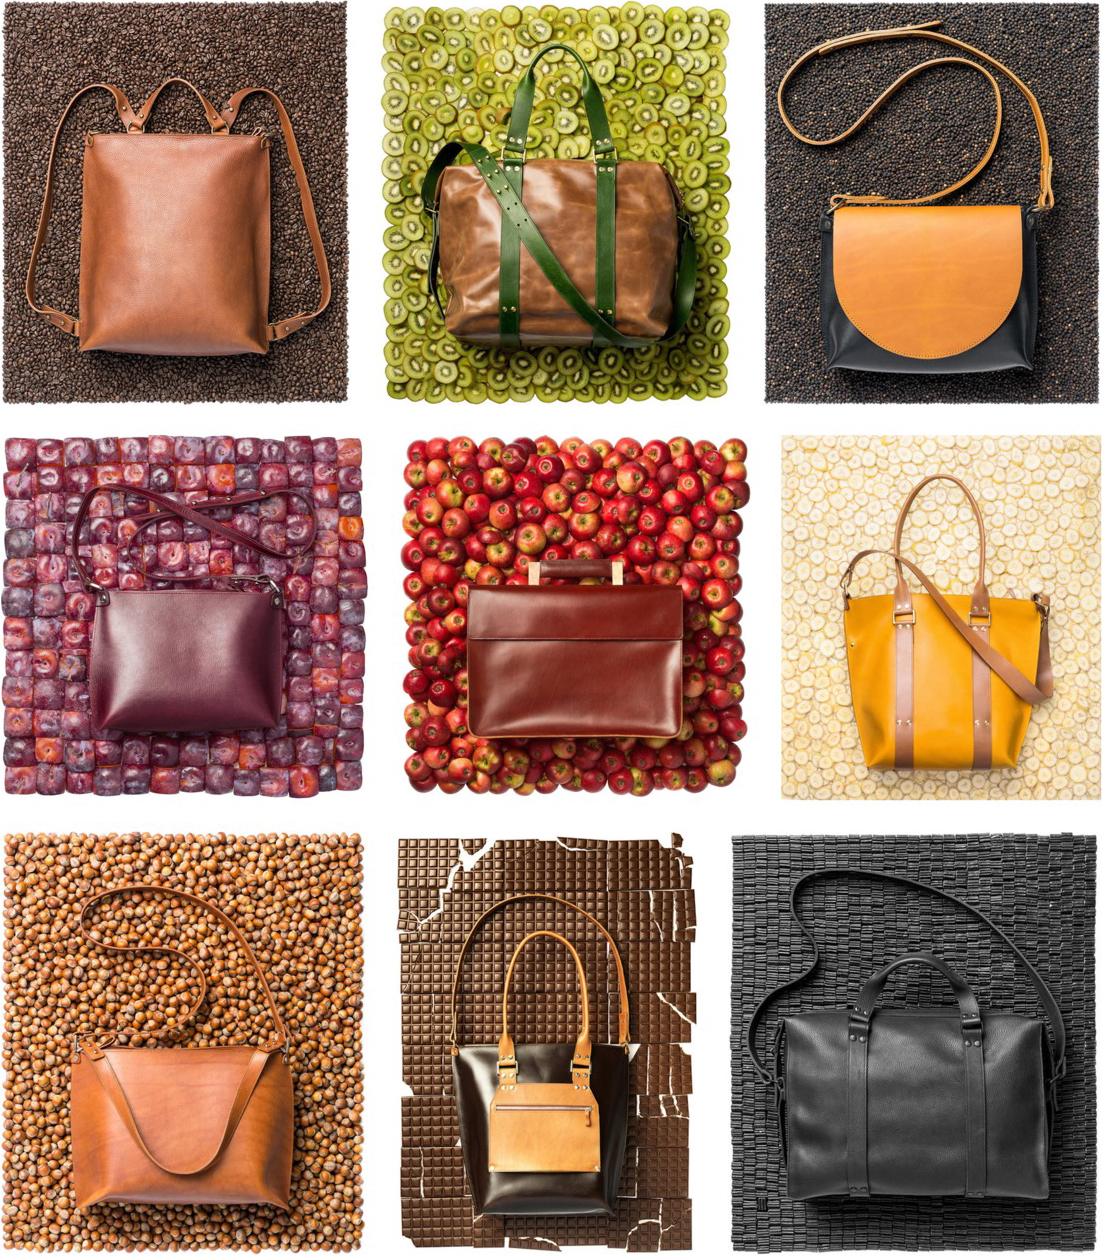 Selection of leather accessories from Stella's collection. Fragment from website. Photos: Renee Altrov